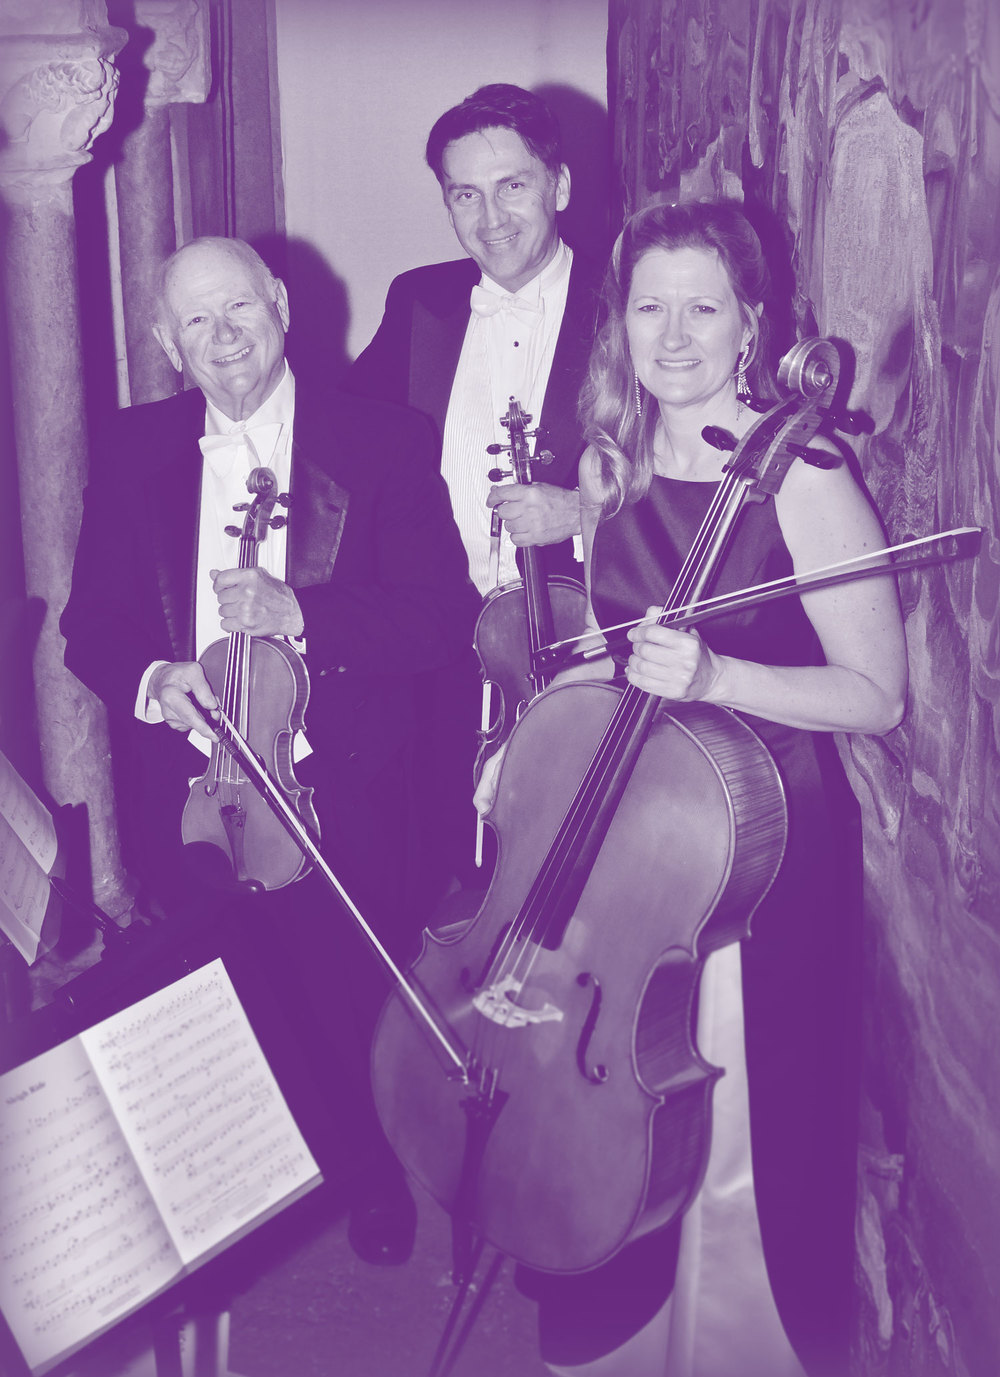 hearst-trio-violin-cello-strings-purple.jpg